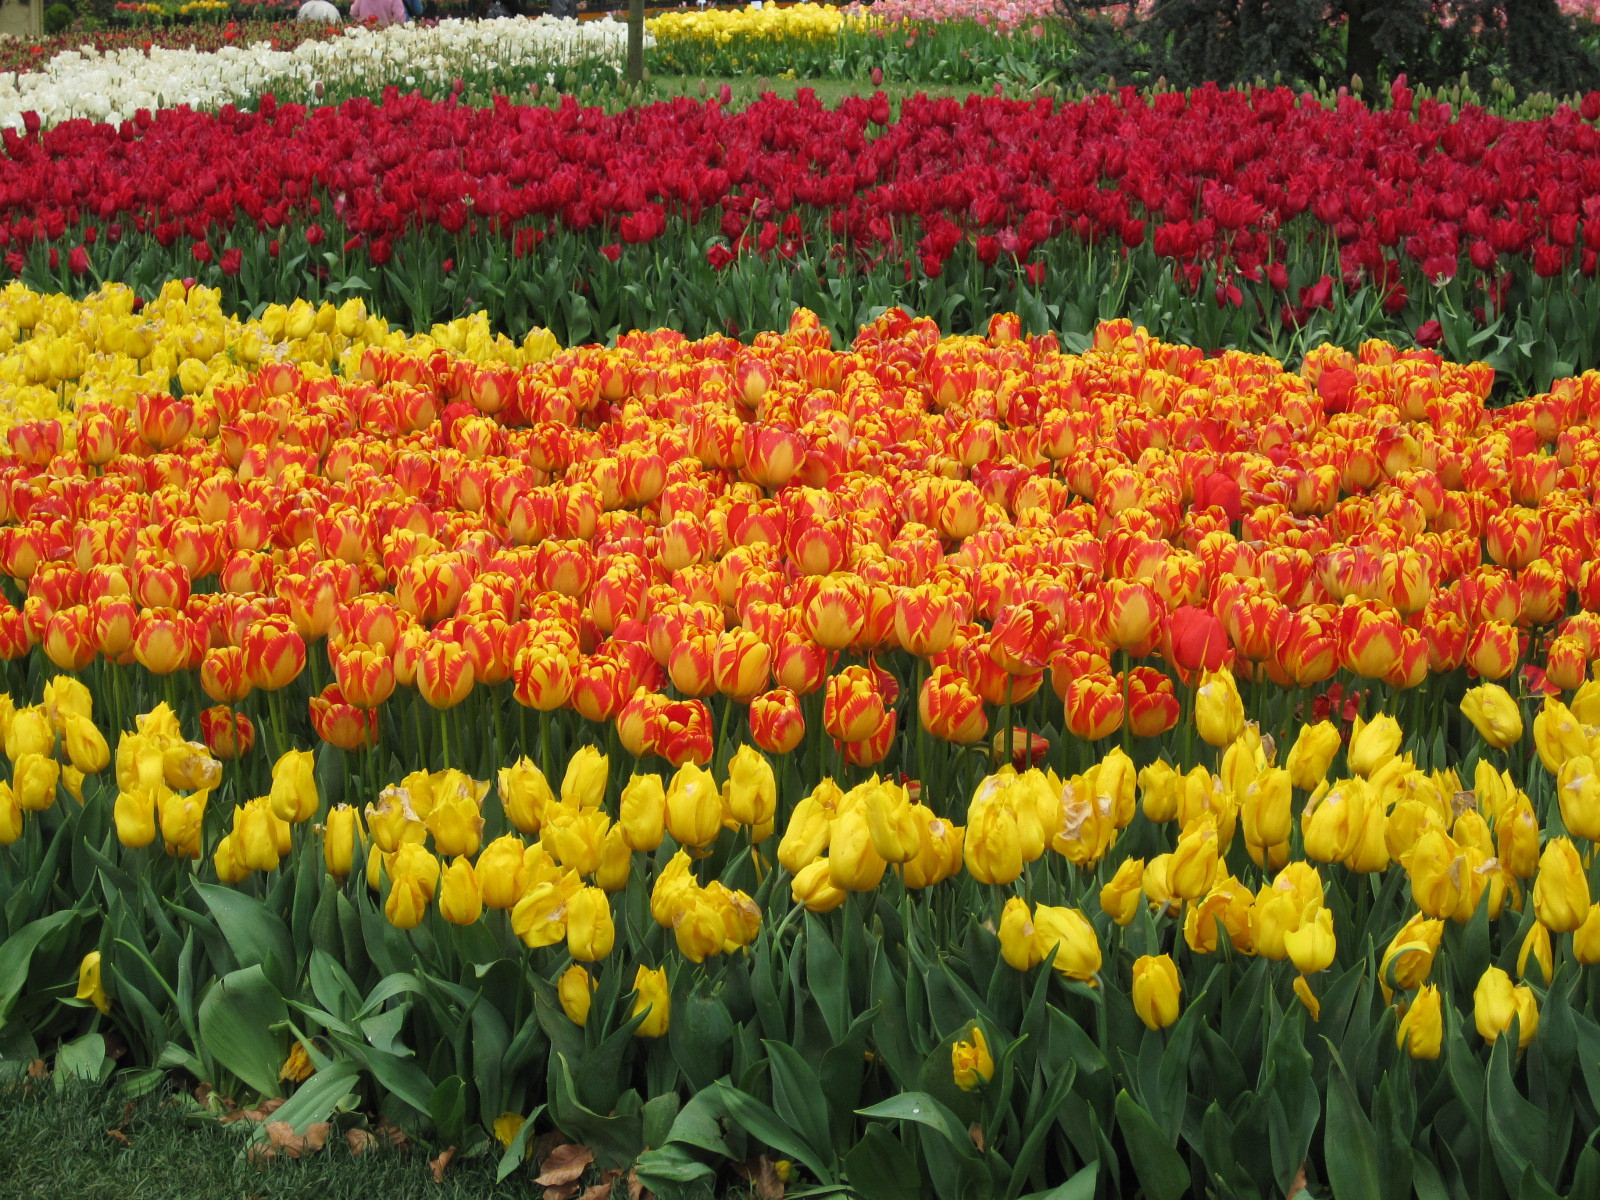 Istanbul's Tulip festival is beyond compare, especially at Emirgan Park. Istanbul, Turkey: annmariemershon.com